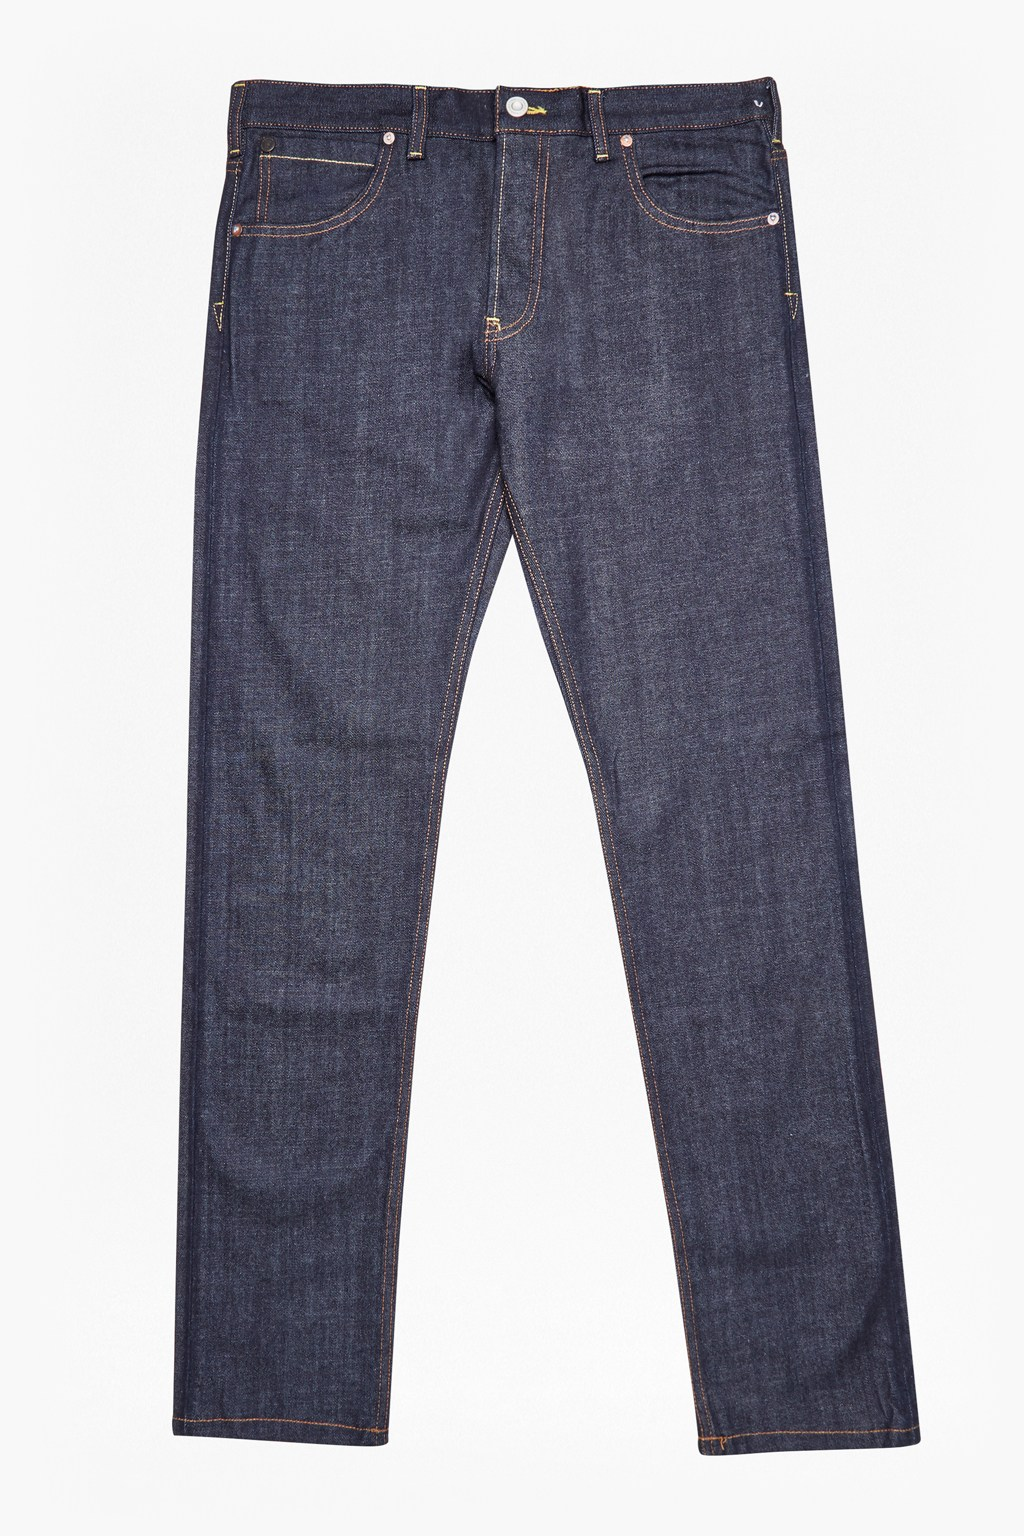 10 of the Best Men's Selvedge Denim Jeans Posted in Fashion Jeans have become an everyday staple for the fashion conscious gent and over the last decade or so there has been a surge in popularity of selvedge denim.